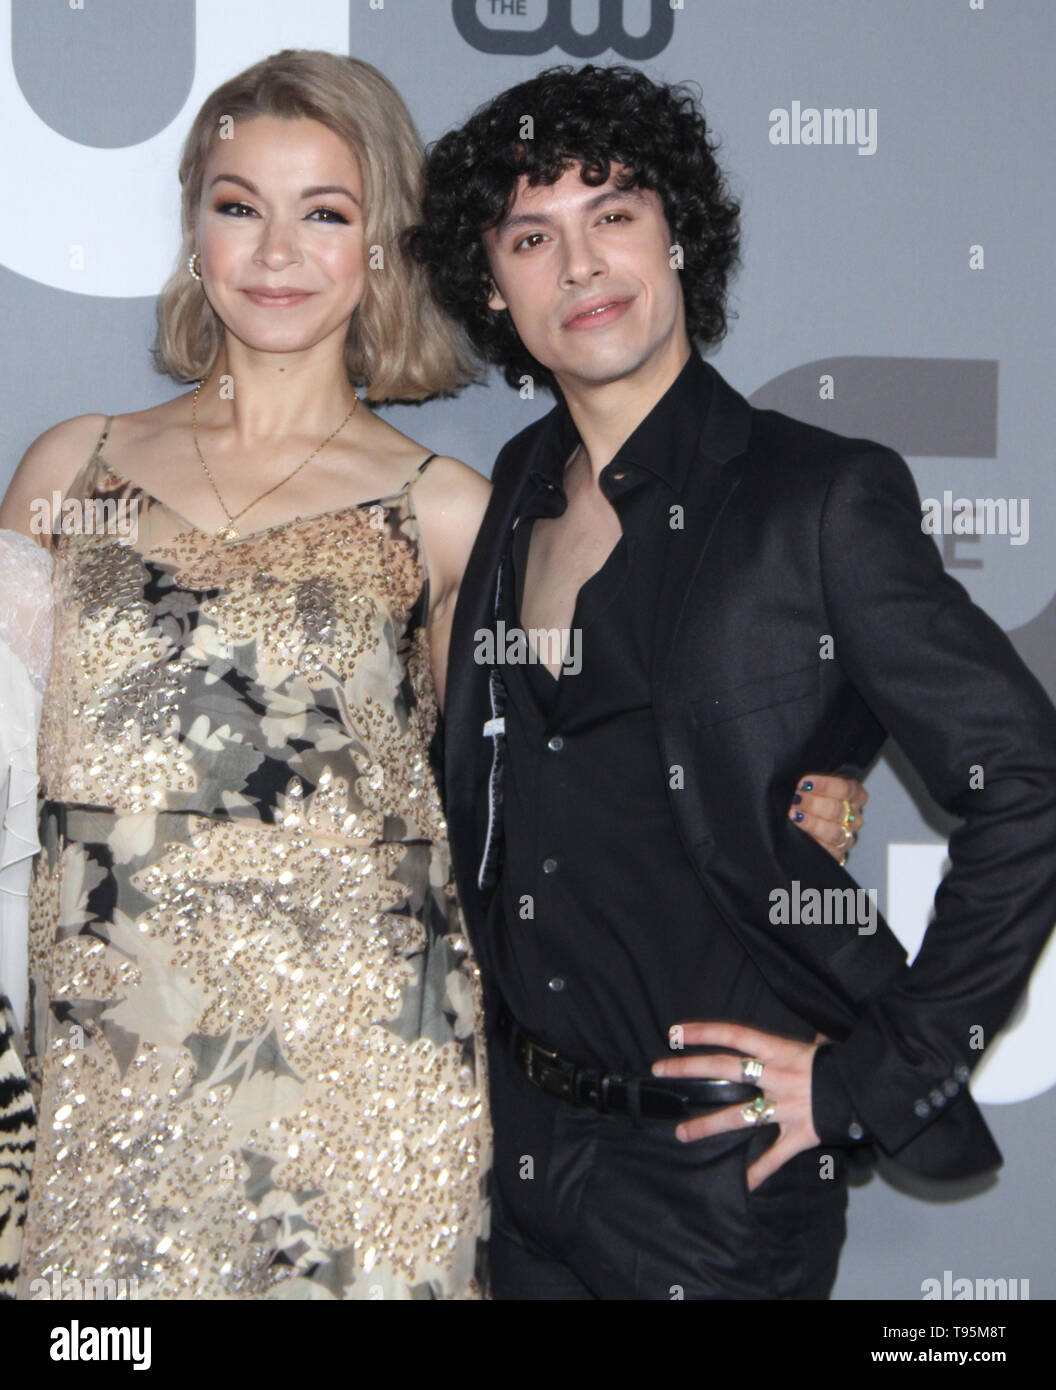 New York, USA. 16th May 2019. Julia Chan, Johnny Beauchamp attend 2019 The CW Upfront New York City Center in New York New York, USA. 16th May 2019. Credit:RW/MediaPunch Credit: MediaPunch Inc/Alamy Live News - Stock Image